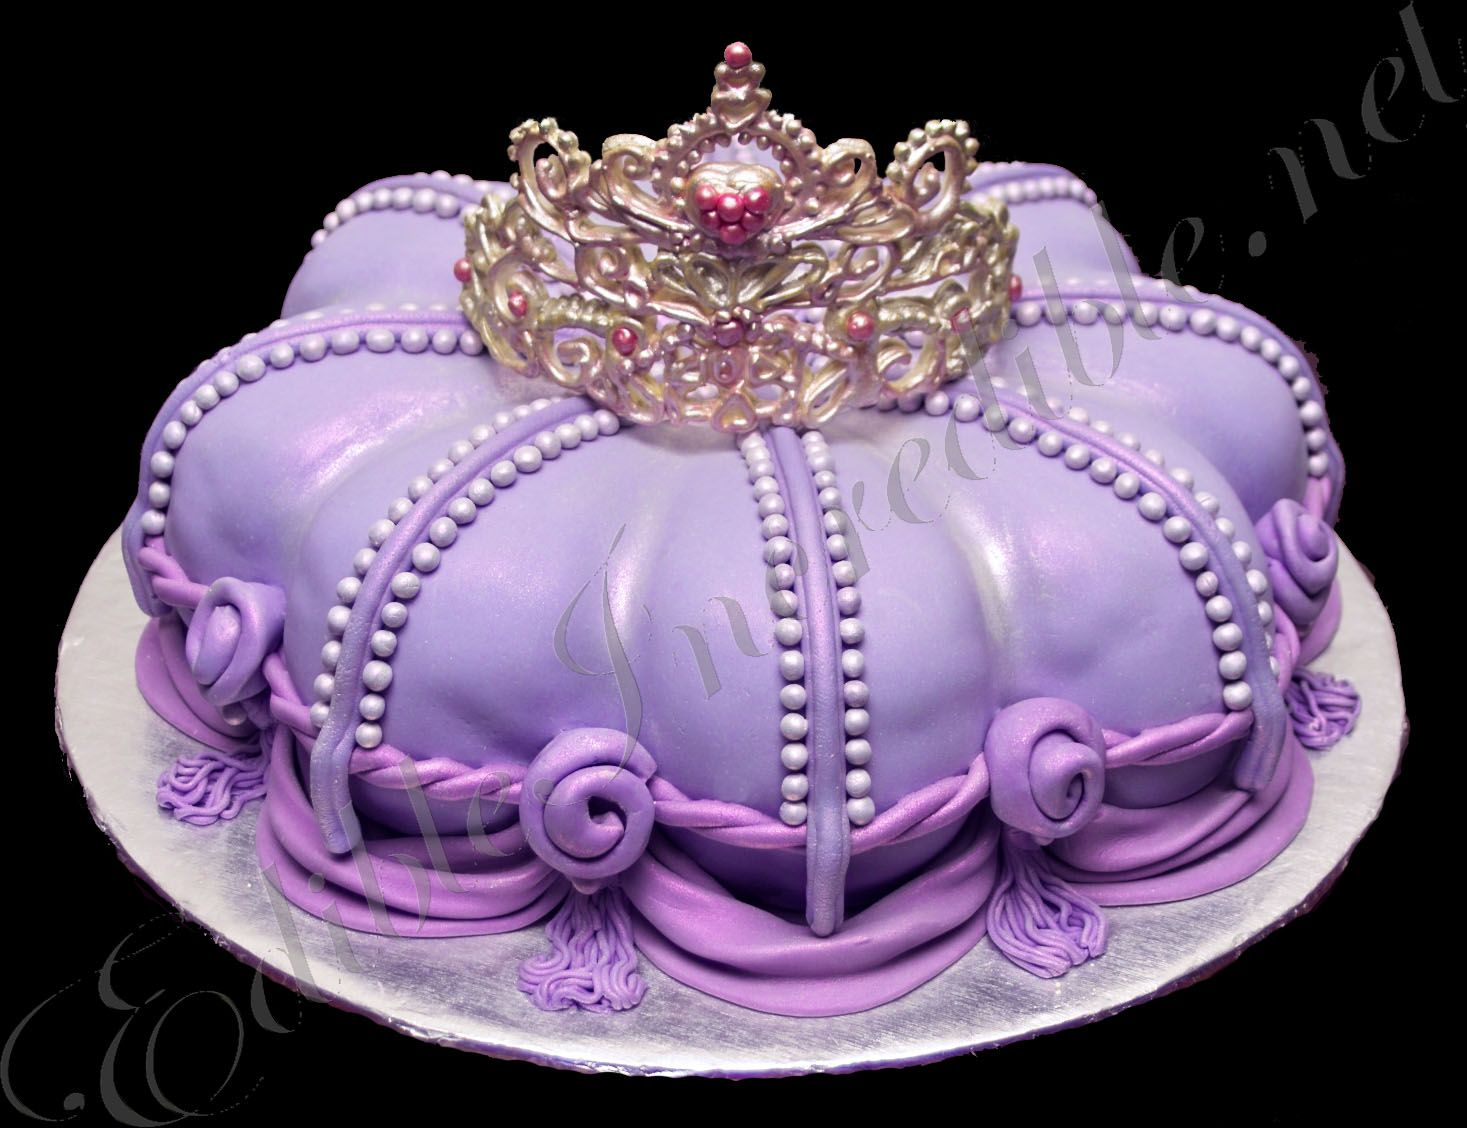 The Most Beautiful Cake I Have Ever Seen Cake Art Pinterest